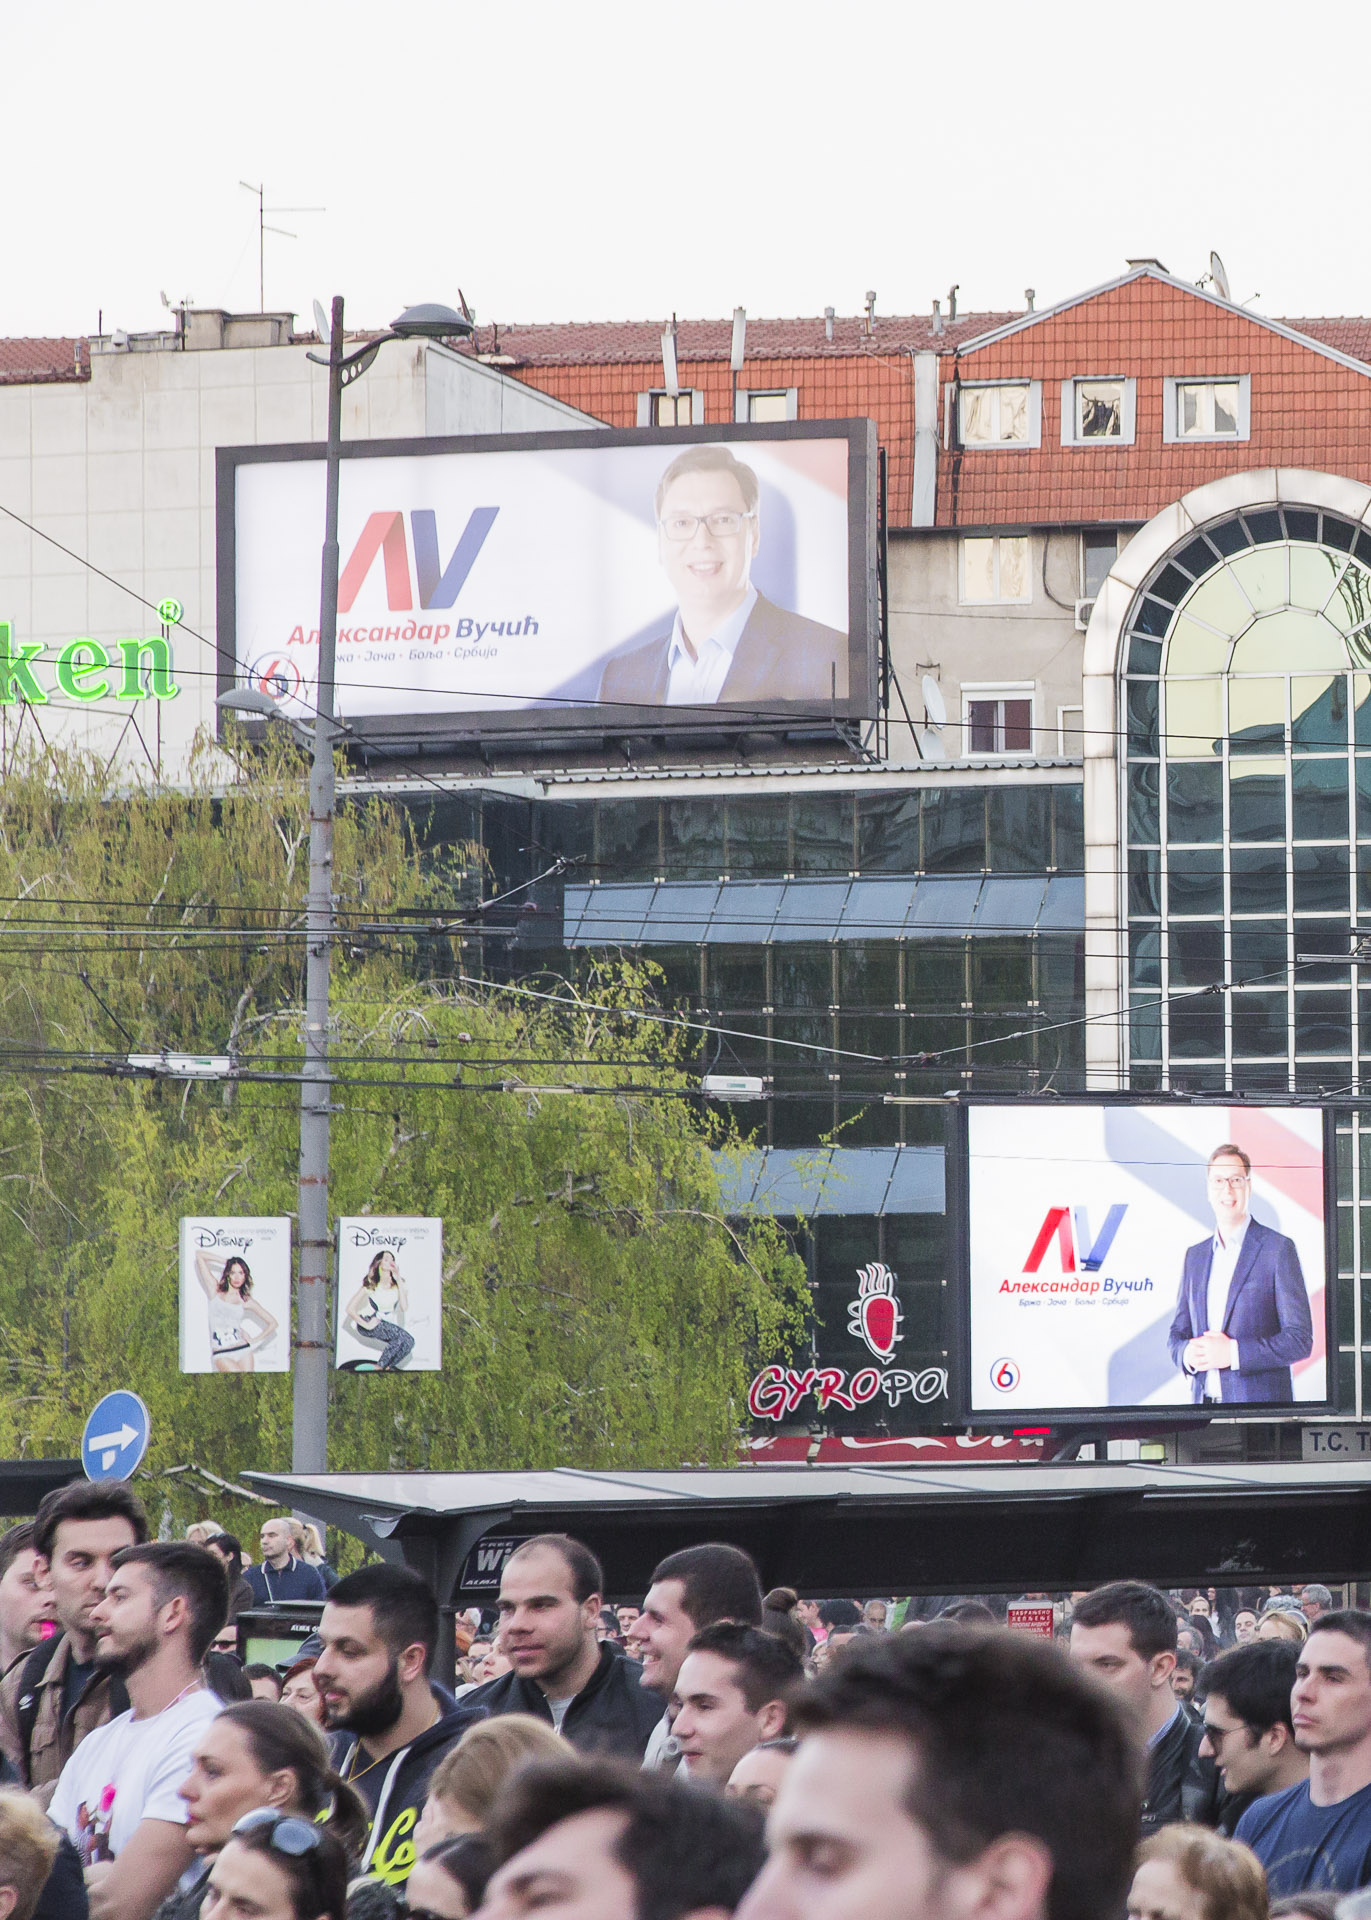 Vucic was prime minister and also candidate to the presidency of the republic. His ads occupied most of the public street signage in Serbia